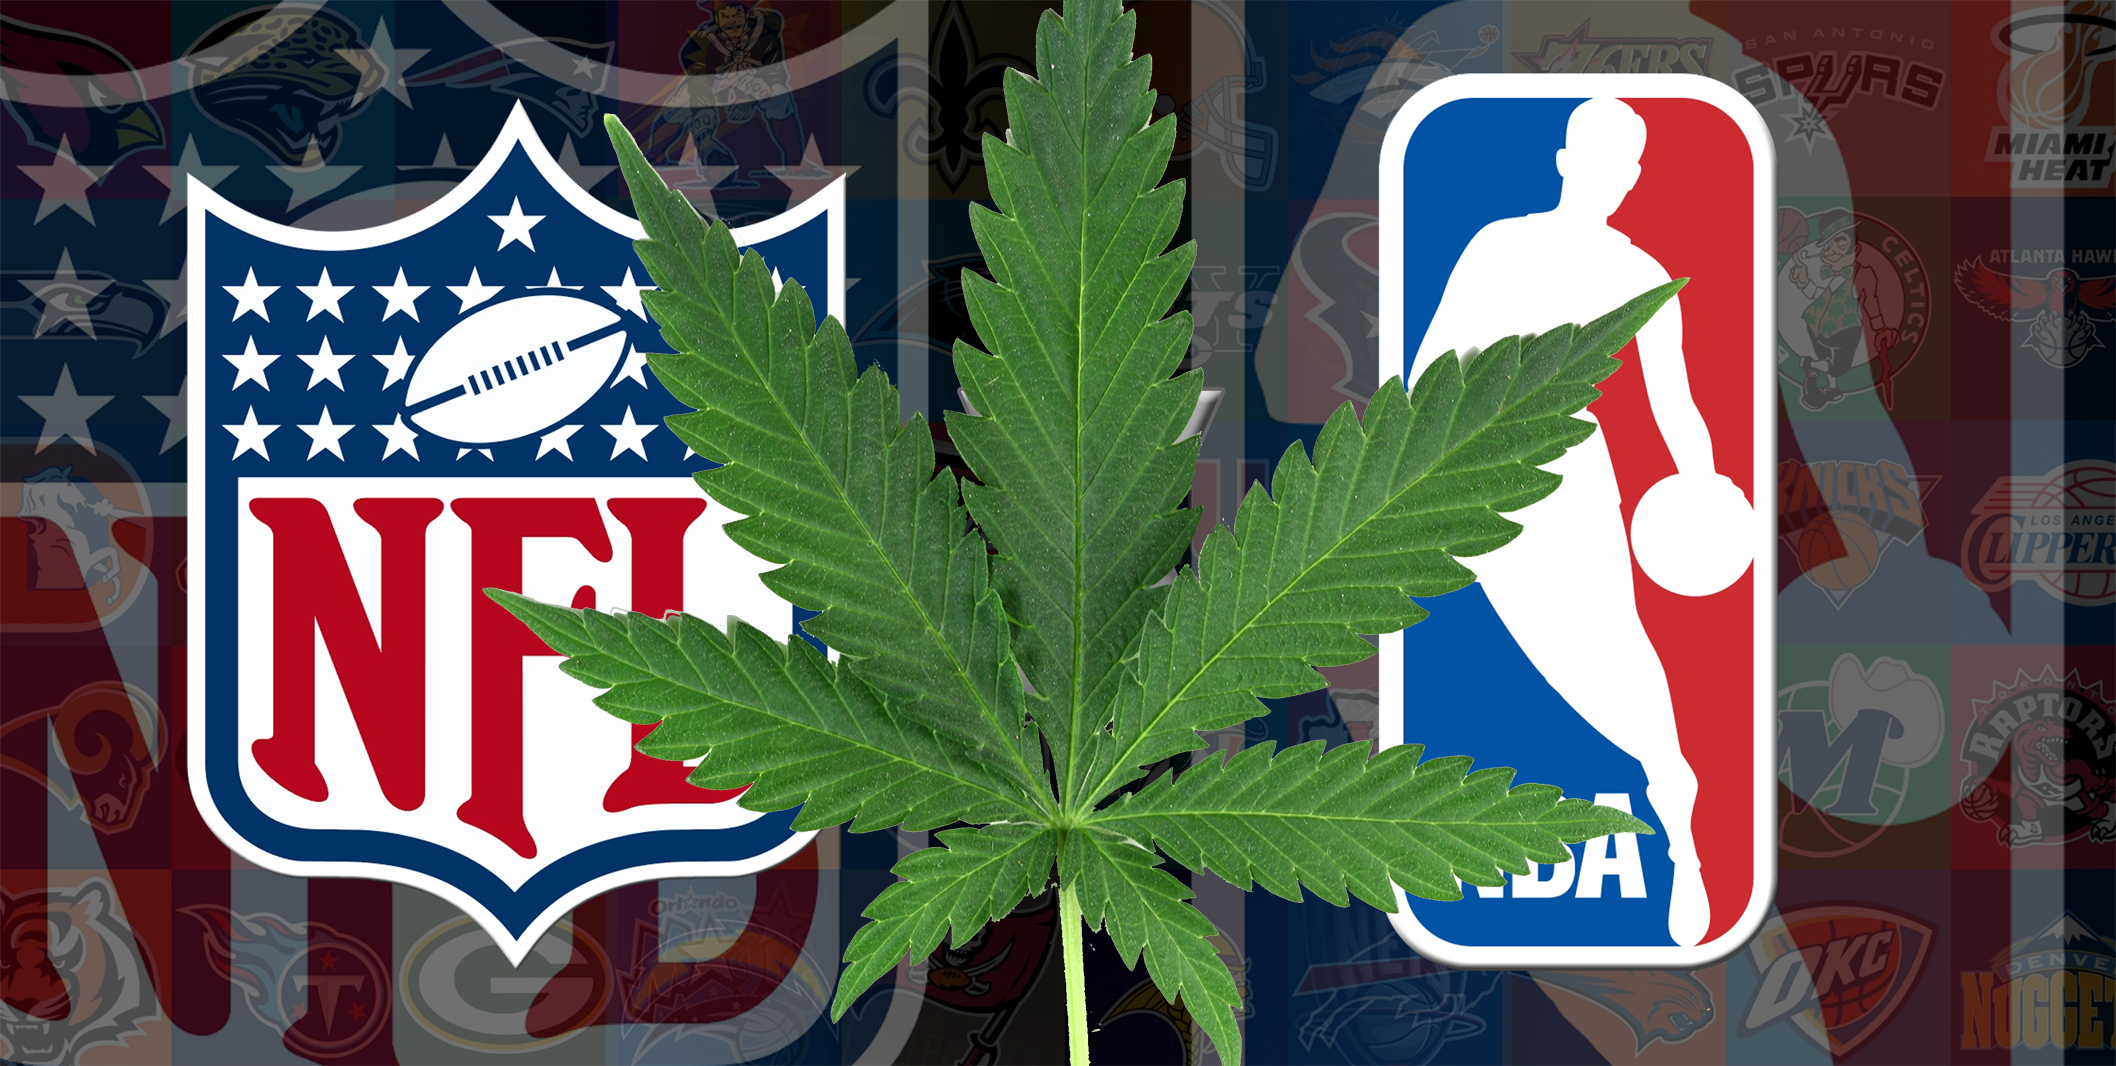 nfl nba marijuana